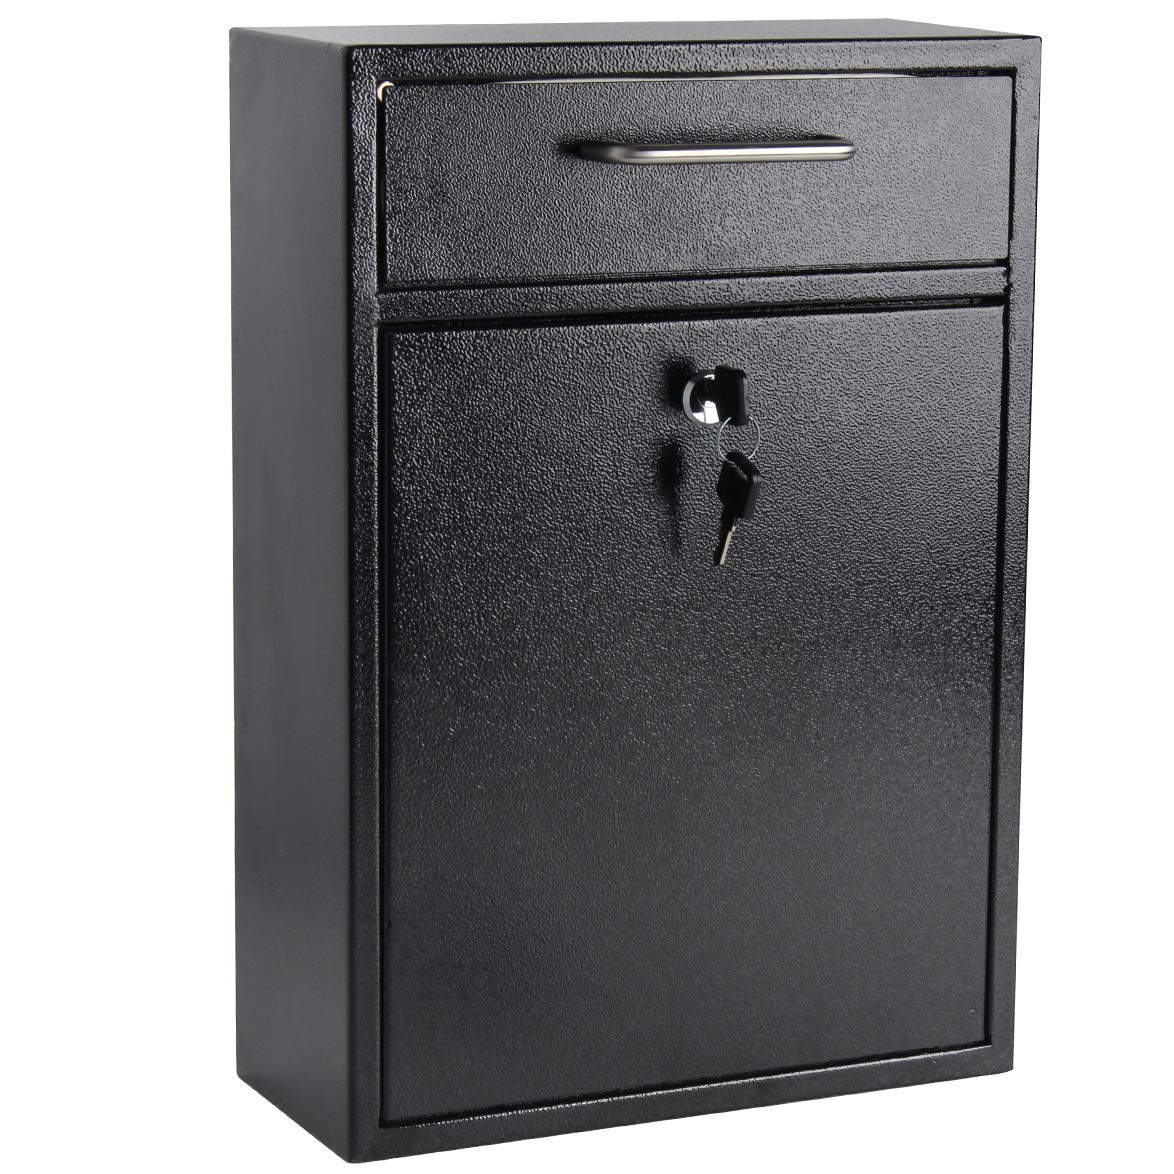 Display4top Wall Mounted Locking Drop Box Mailbox-Inter Office Mailbox-Letter Box,Ideal for Residential Deliveries, Schools, Office, Home, Mail Centers and More.(Black) (Large) by Display4top